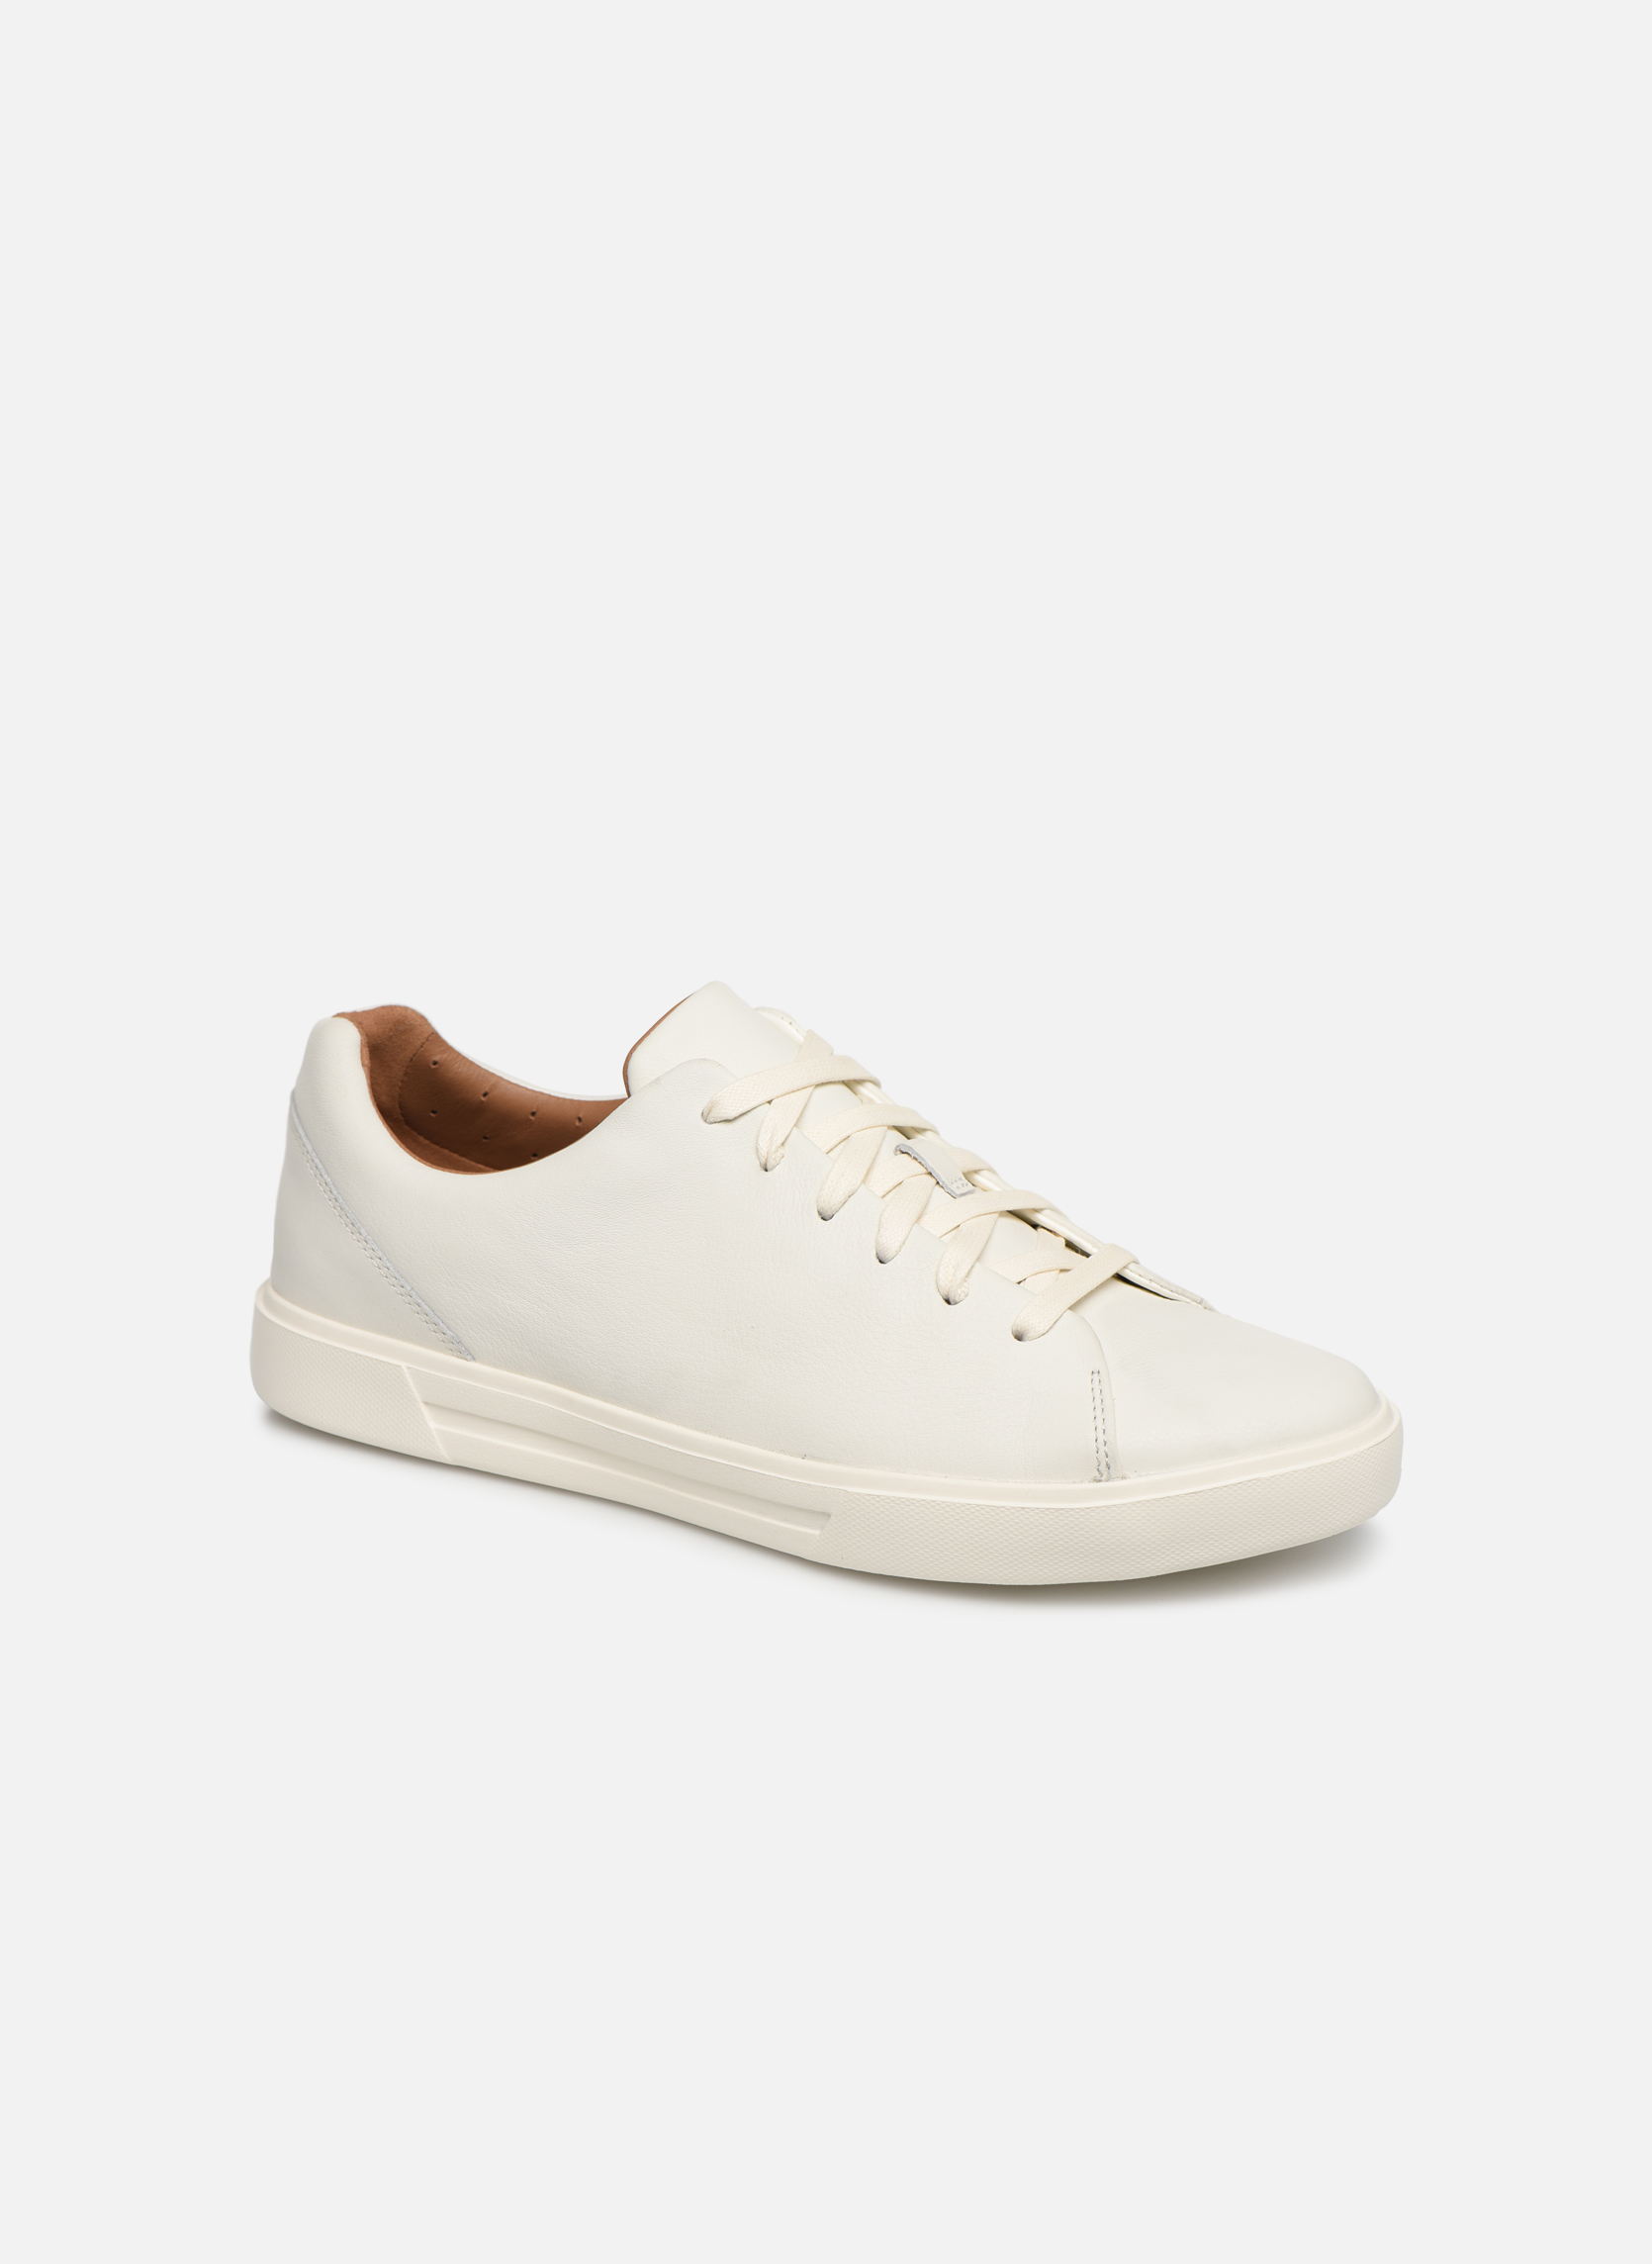 Sneakers Clarks Unstructured Wit